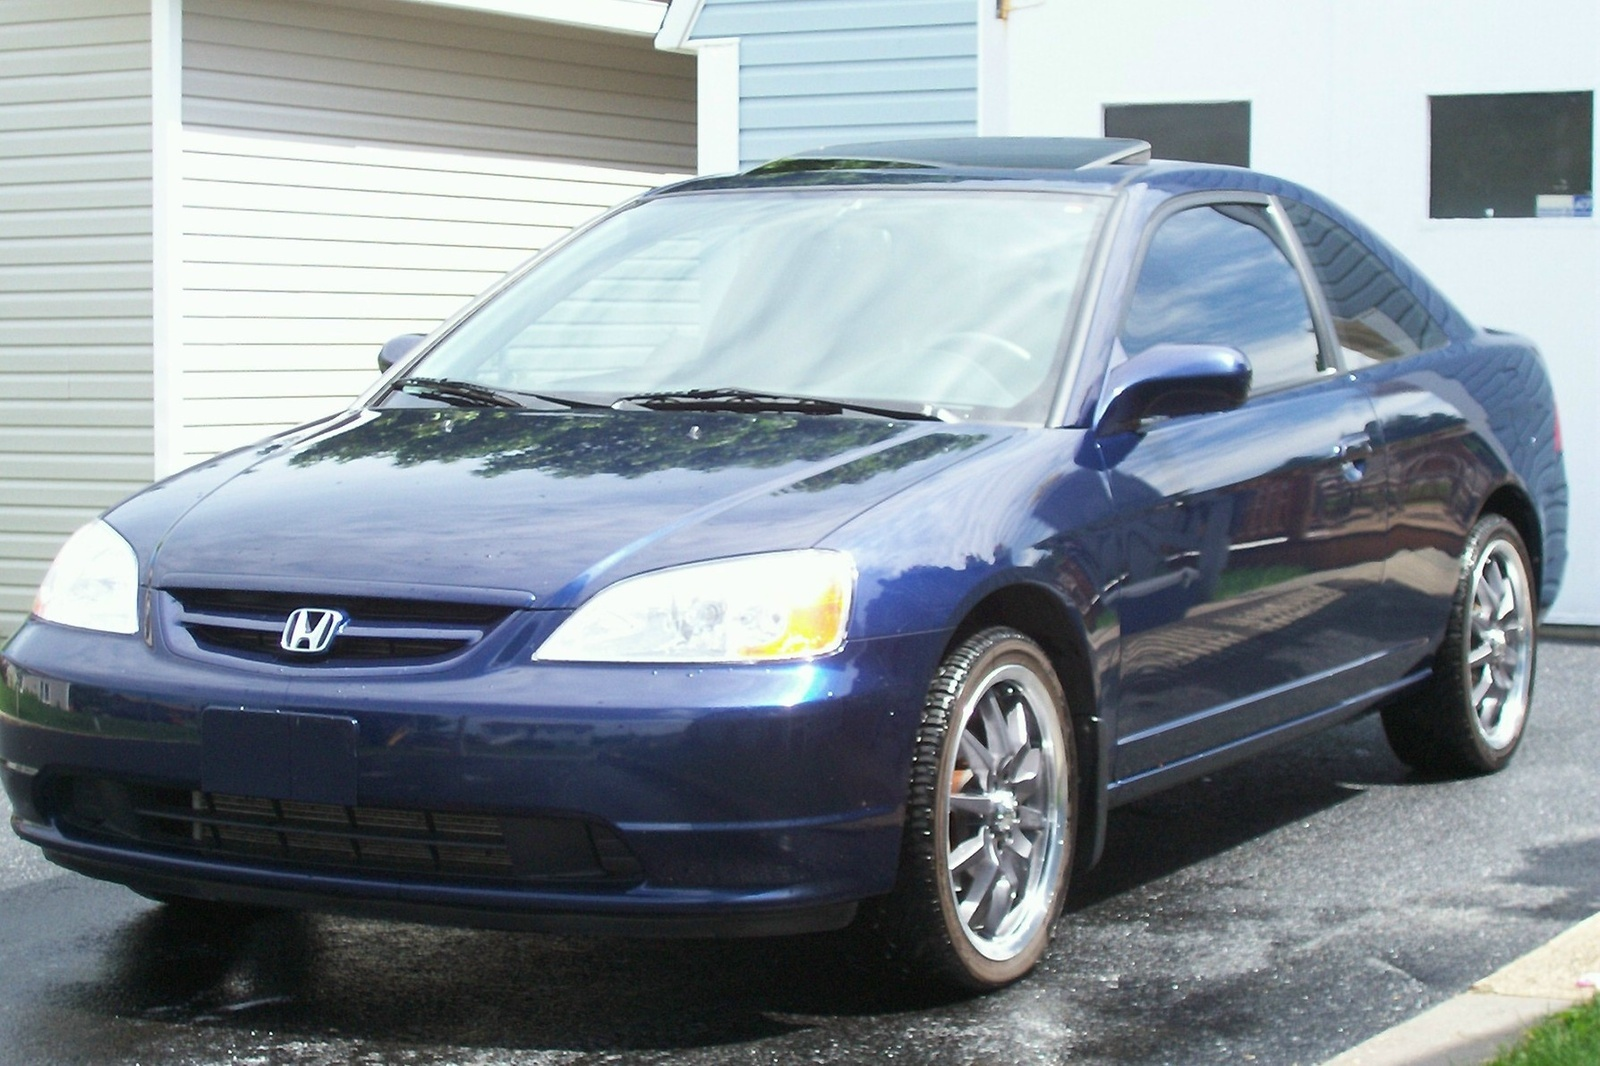 All Types civic si mugen for sale : 2003 Honda Civic Coupe - Overview - CarGurus